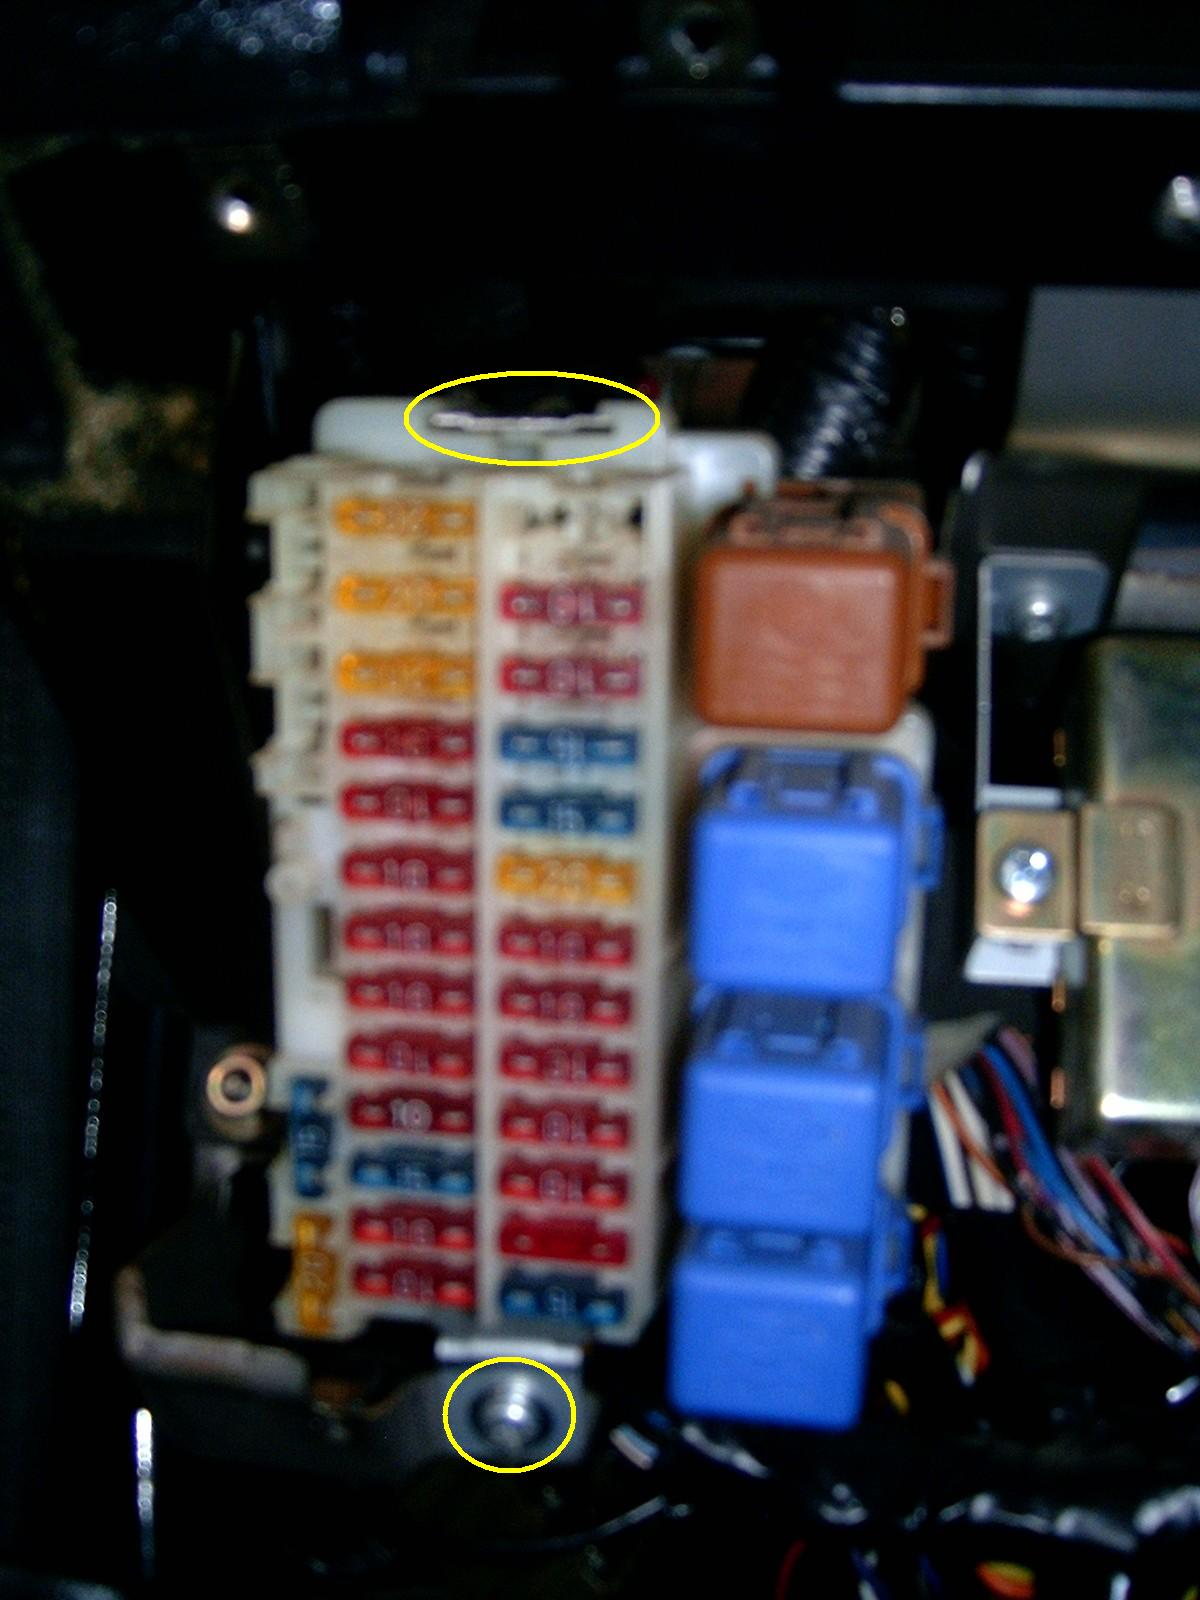 nissan_maxima_dash_removal_18 nissan maxima digital dash hud tutorial 2006 nissan maxima fuse box diagram at bakdesigns.co